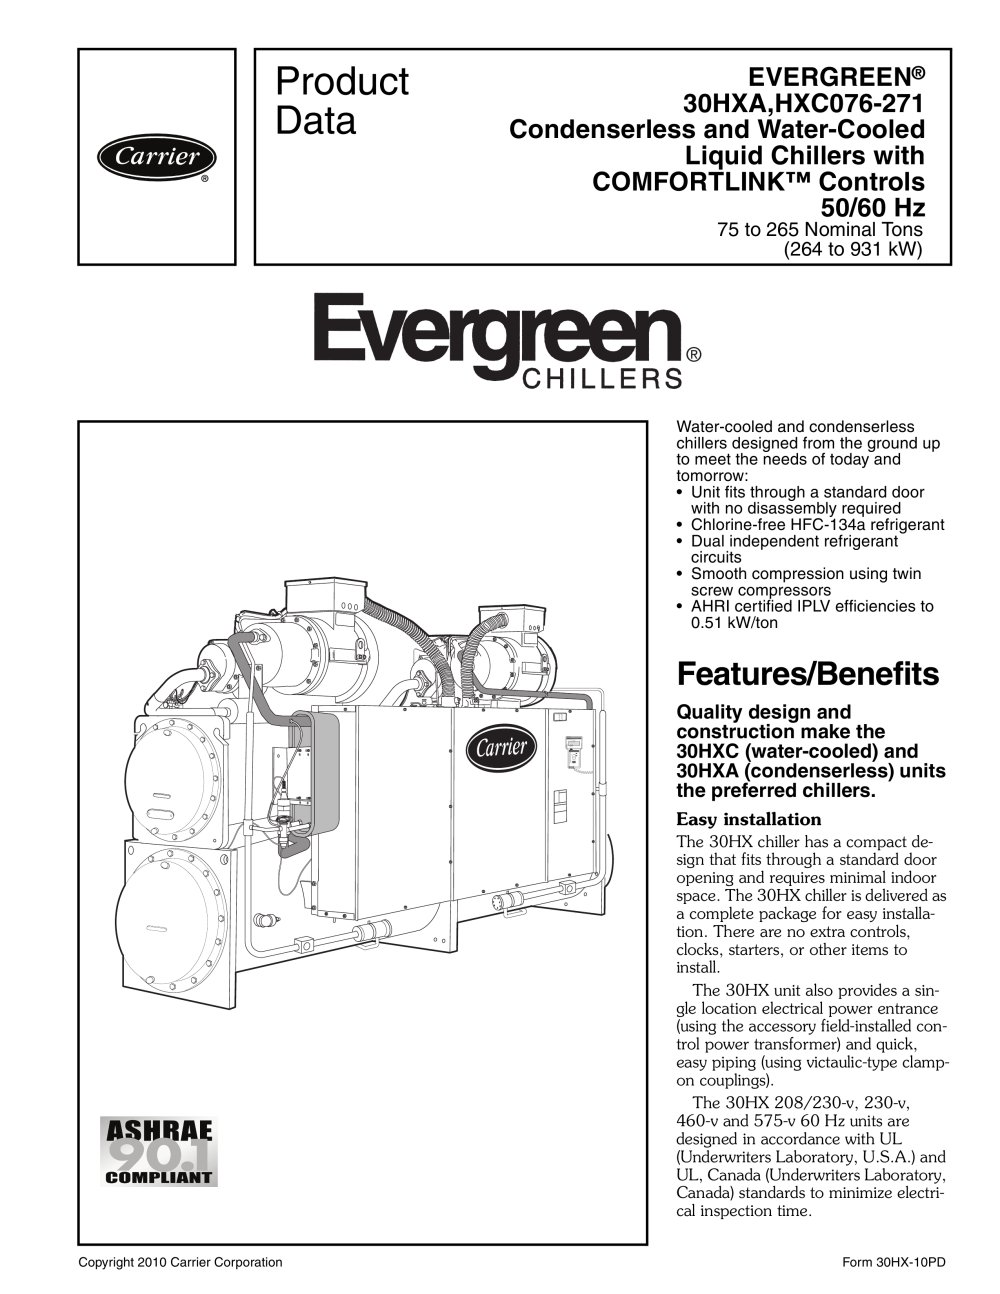 carrier 30hxc chiller wiring diagram 2000 chevy cavalier radio evergreen 30hxa hxc076 271 commercial pdf catalogs 1 52 pages